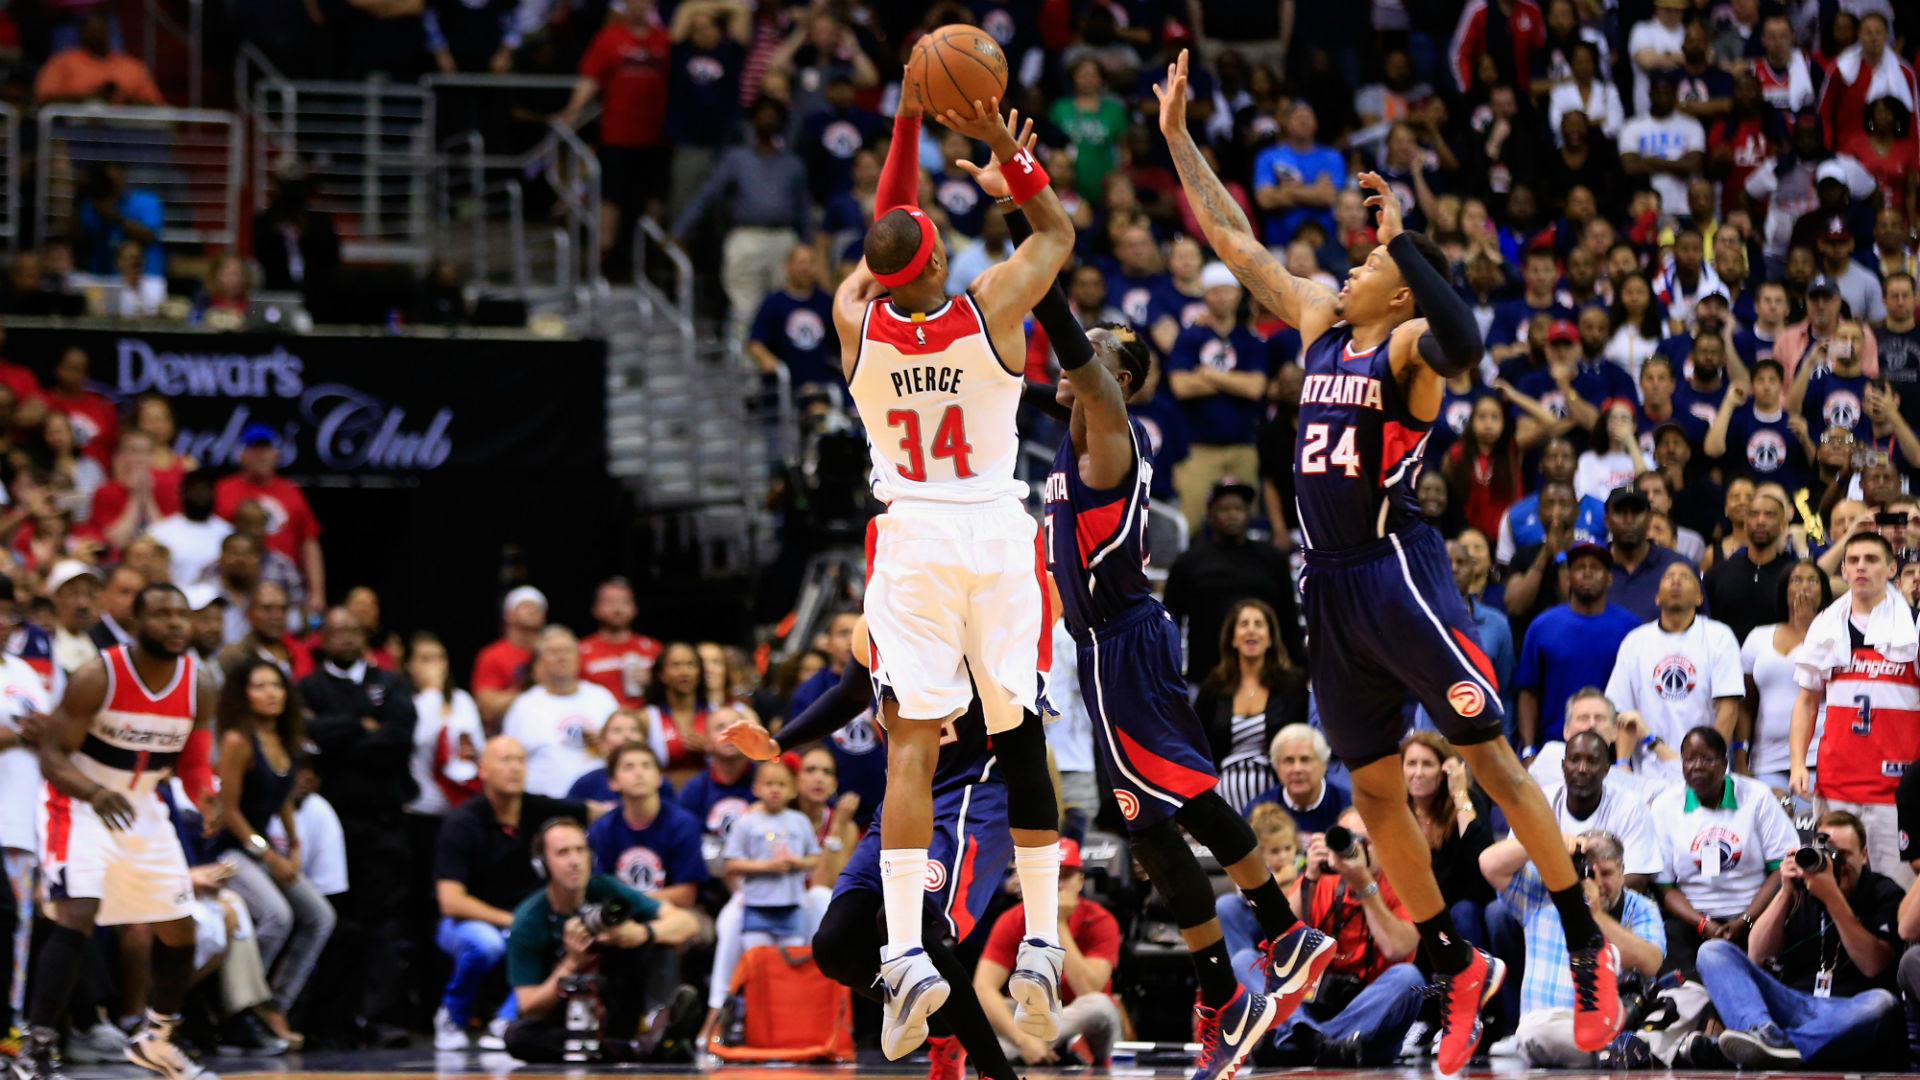 Wizards offer up a great 'leap second' joke